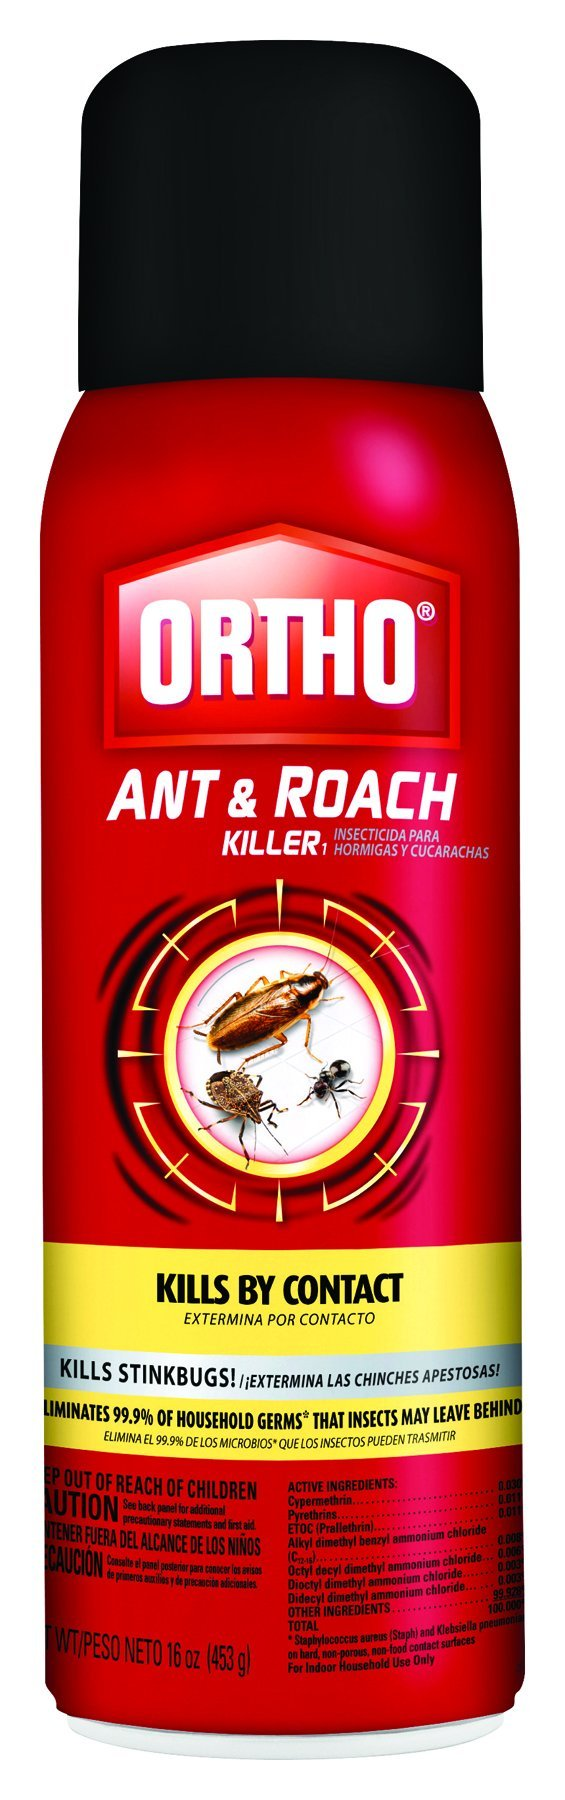 Ortho Ant and Roach Killer (Case of 12), 16 oz